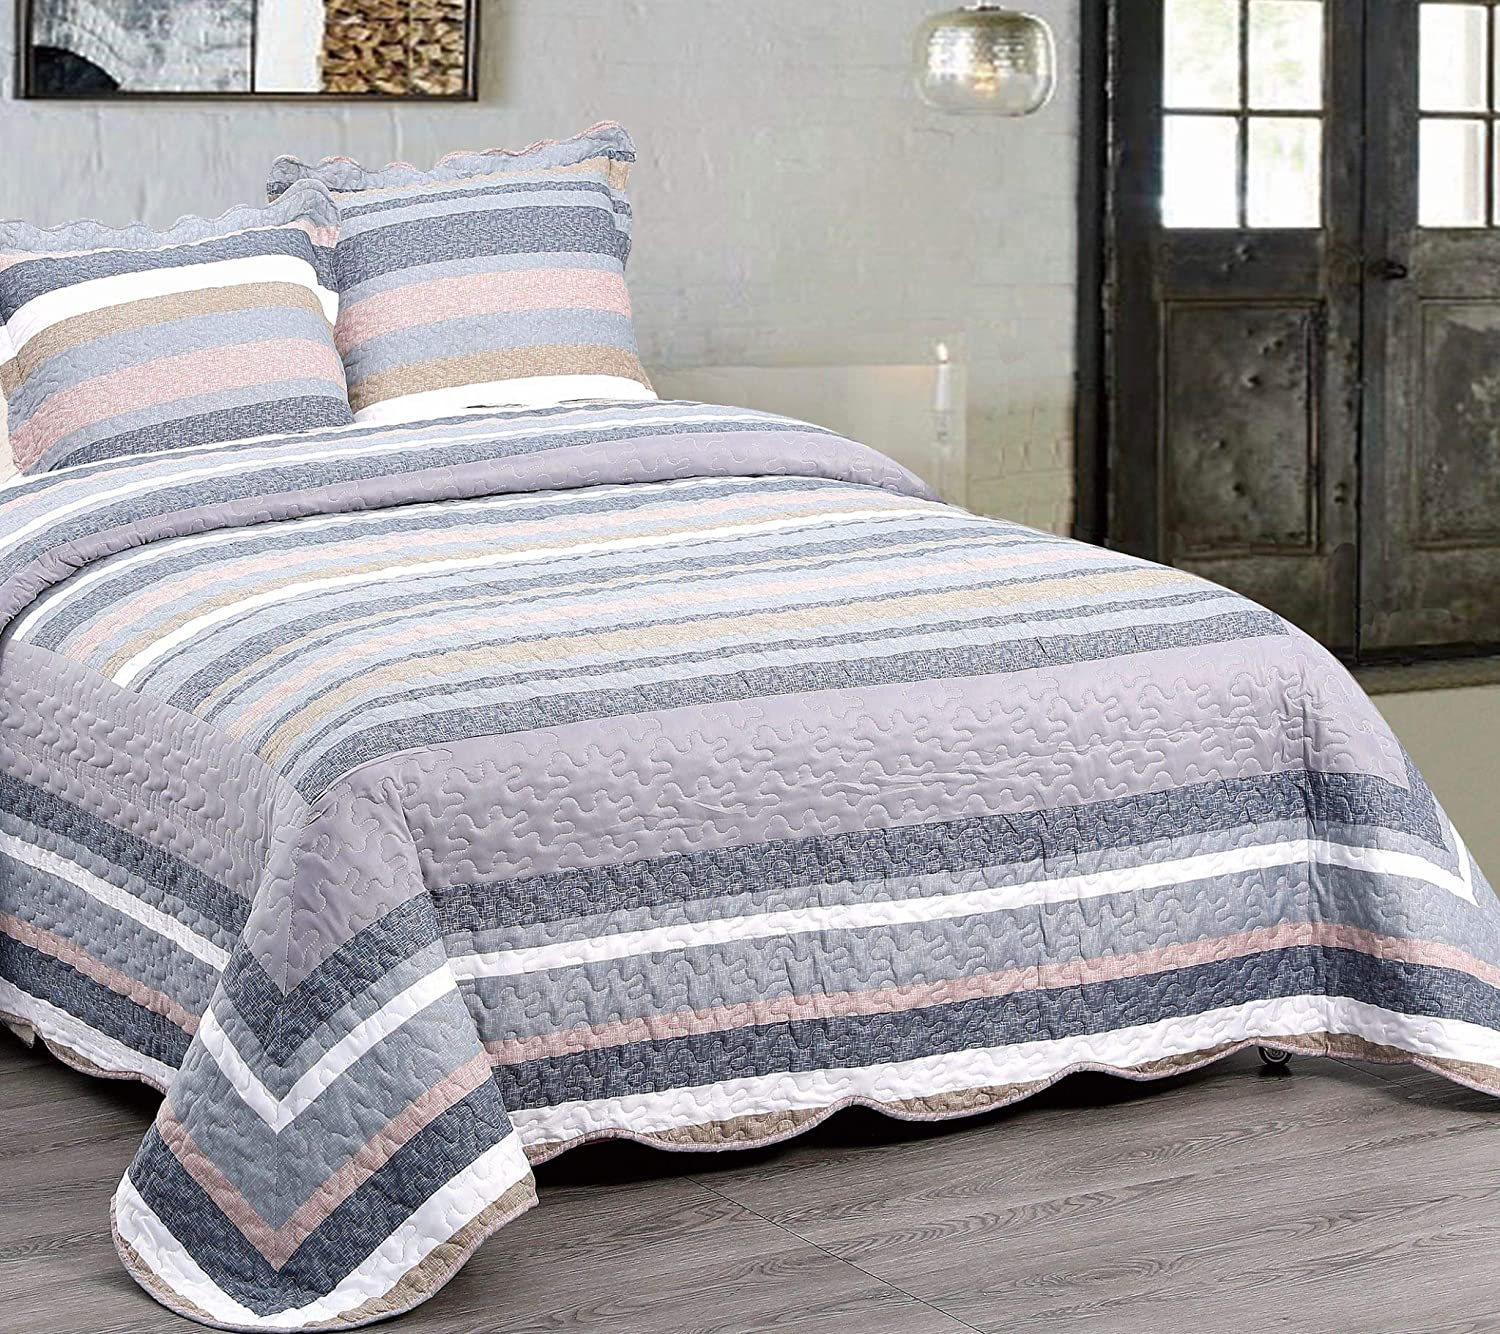 Ultra Soft All-Season Bedspread Paarizaat Avery Microfiber Quilt Bedding Coverlet 110x96